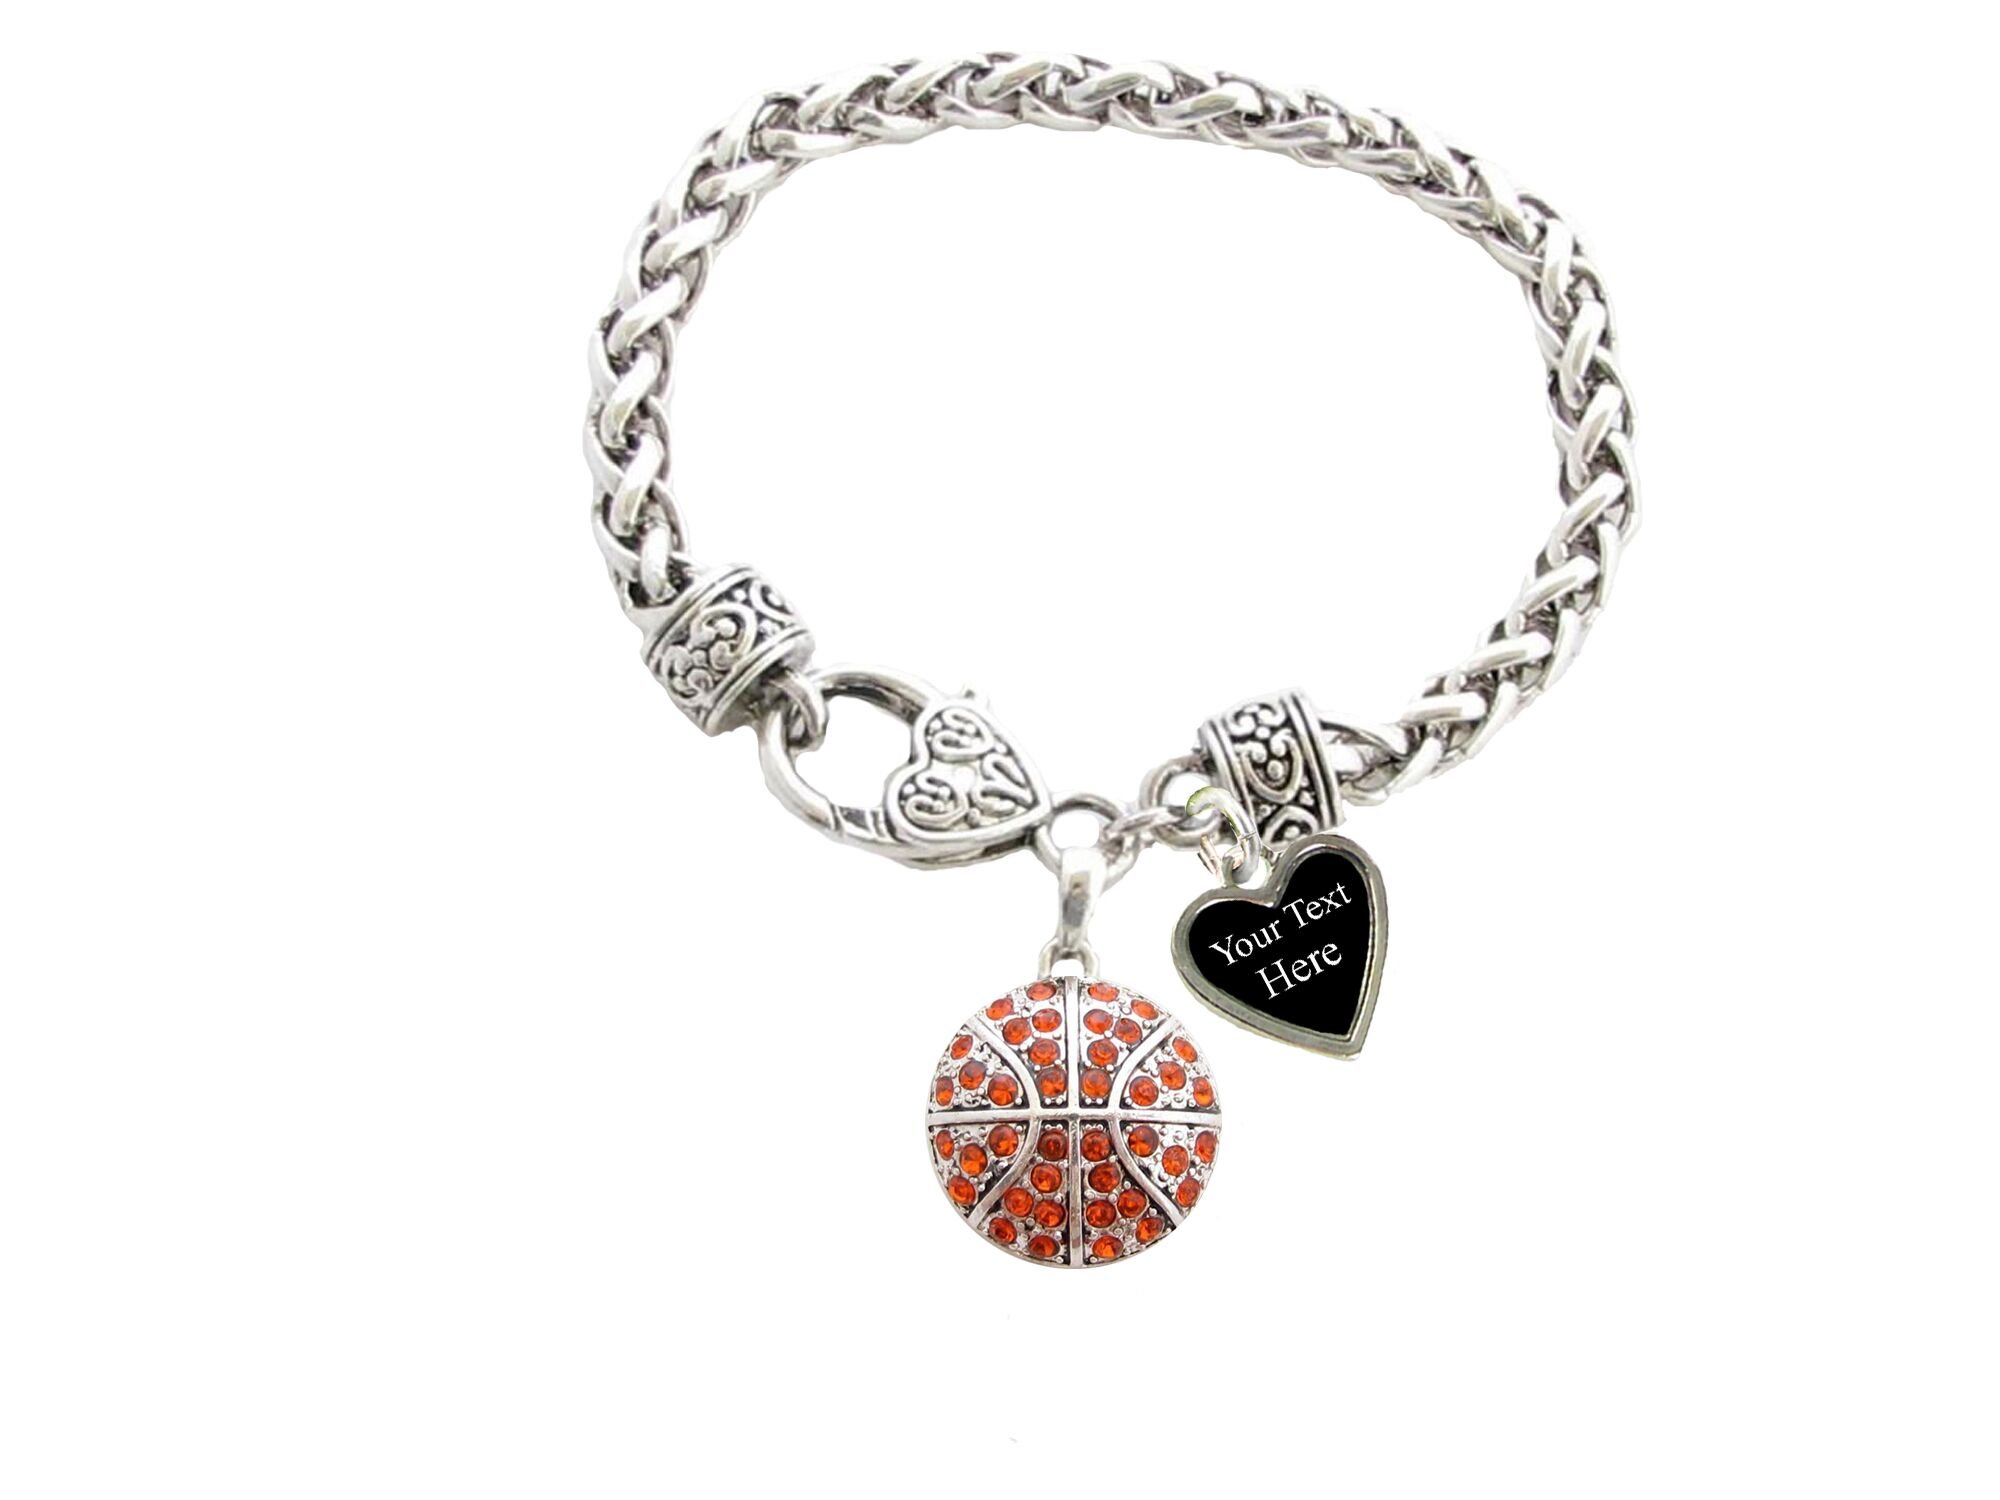 Holly Road Orange Crystal Basketball Silver Lobster Claw Bracelet Jewelry Choose Your Text